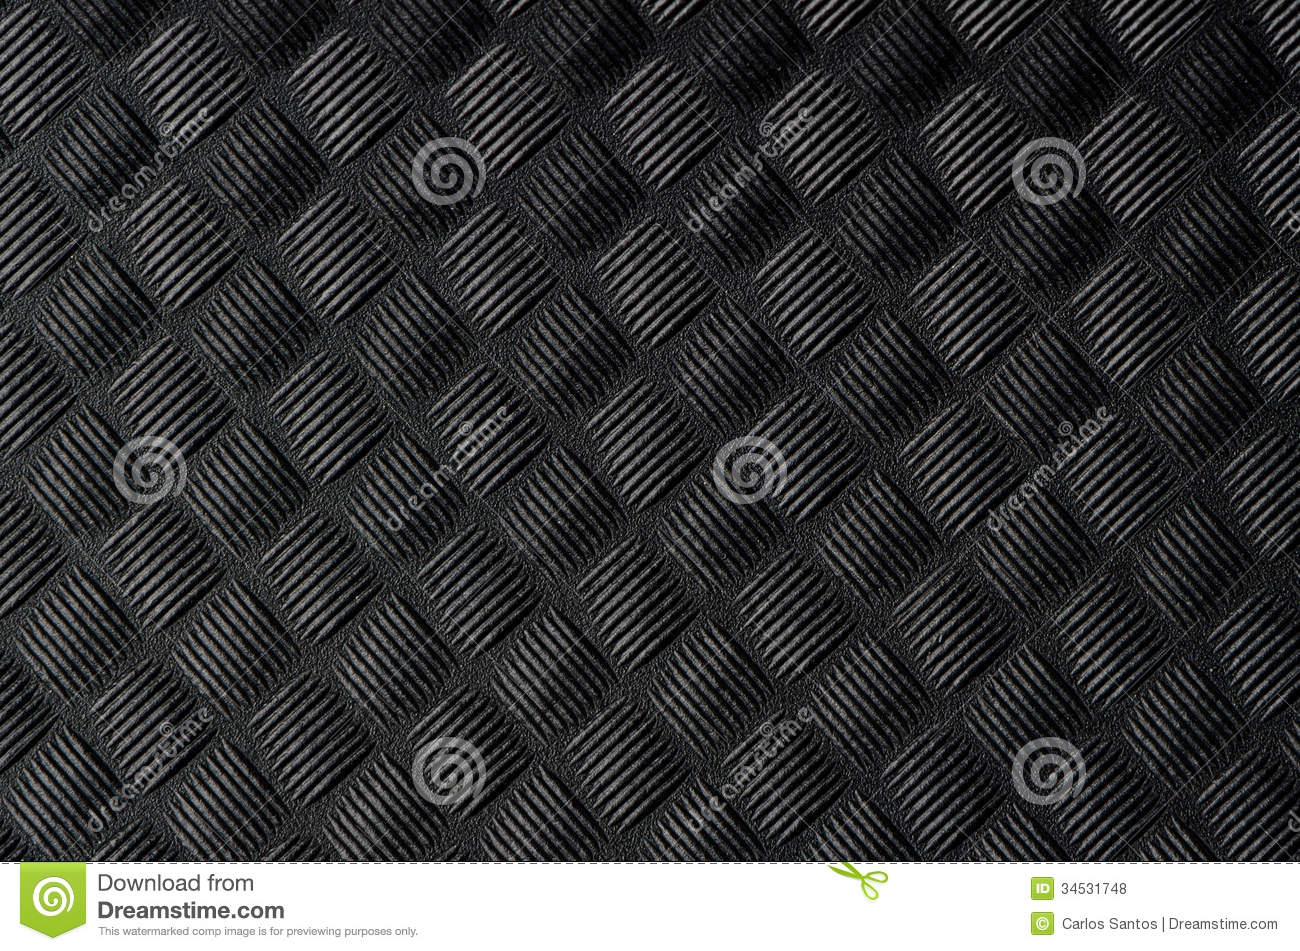 Rubber Texture Royalty Free Stock Photos Image 34531748